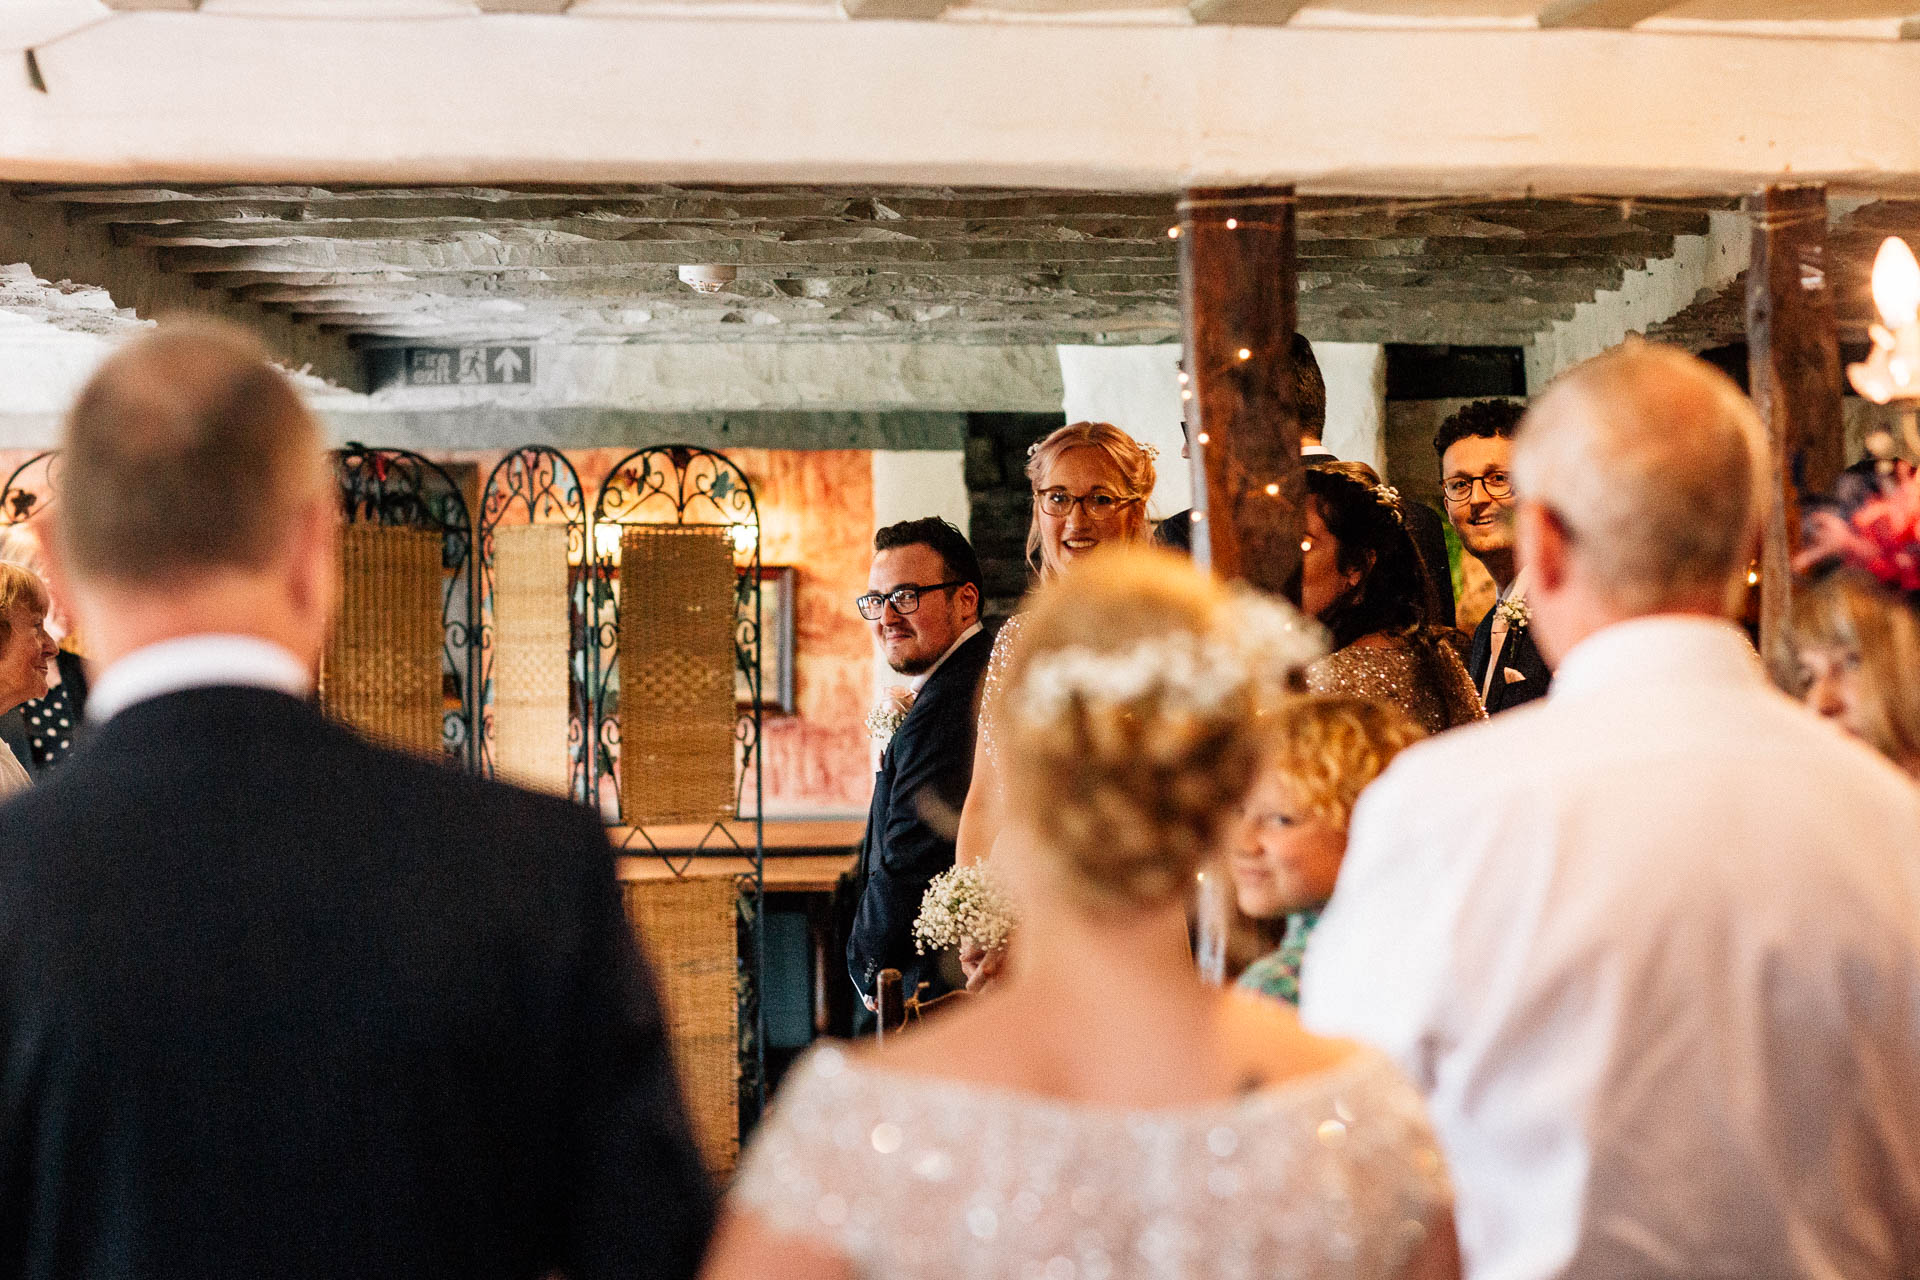 The Wild Boar Wedding Photography - EM - grooms reaction to bride walking down the aisle